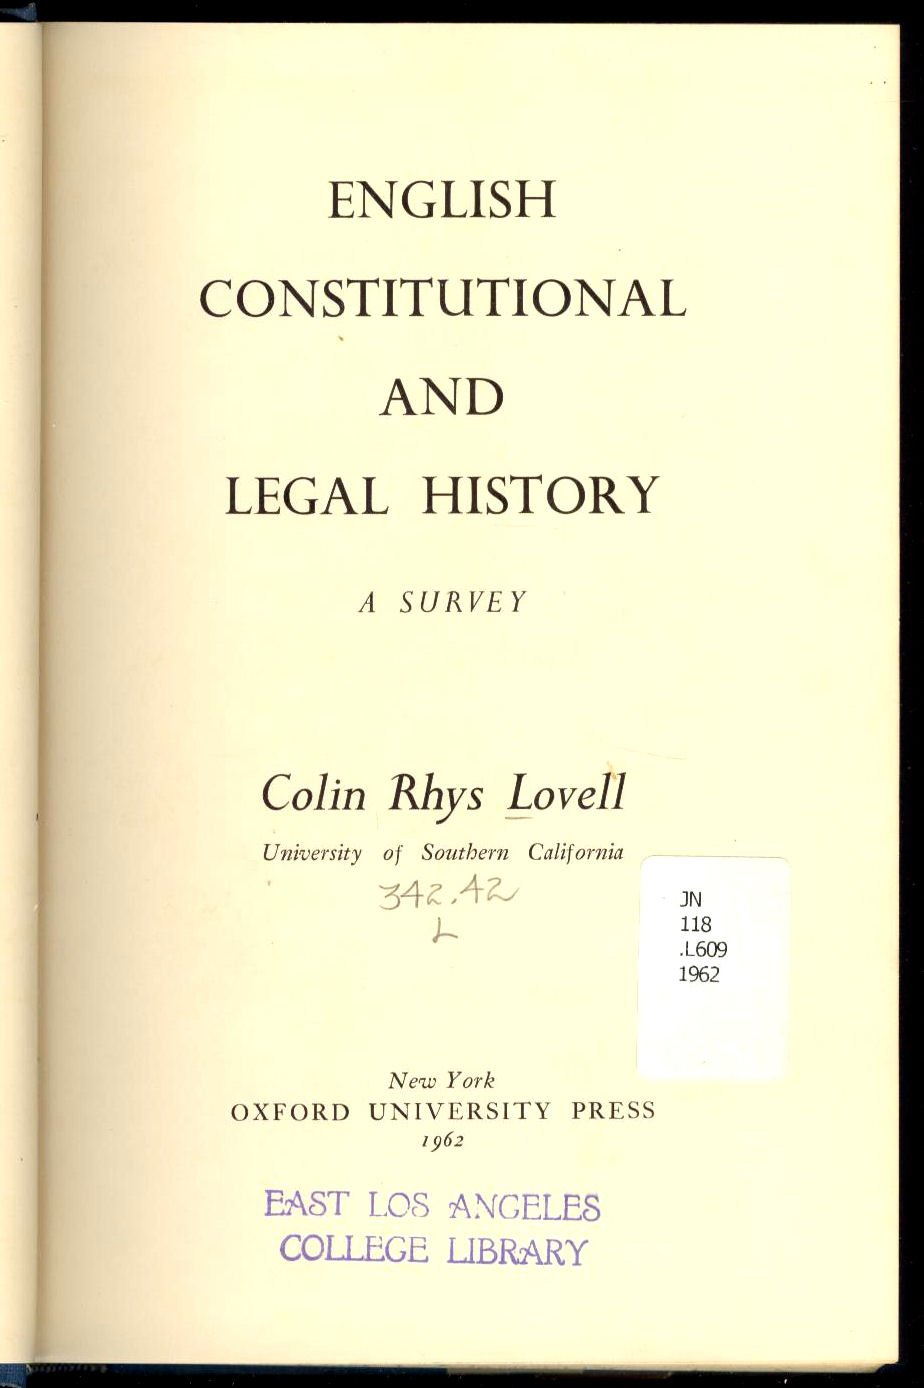 English constitutional and legal history,: A survey, Lovell, Colin Rhys